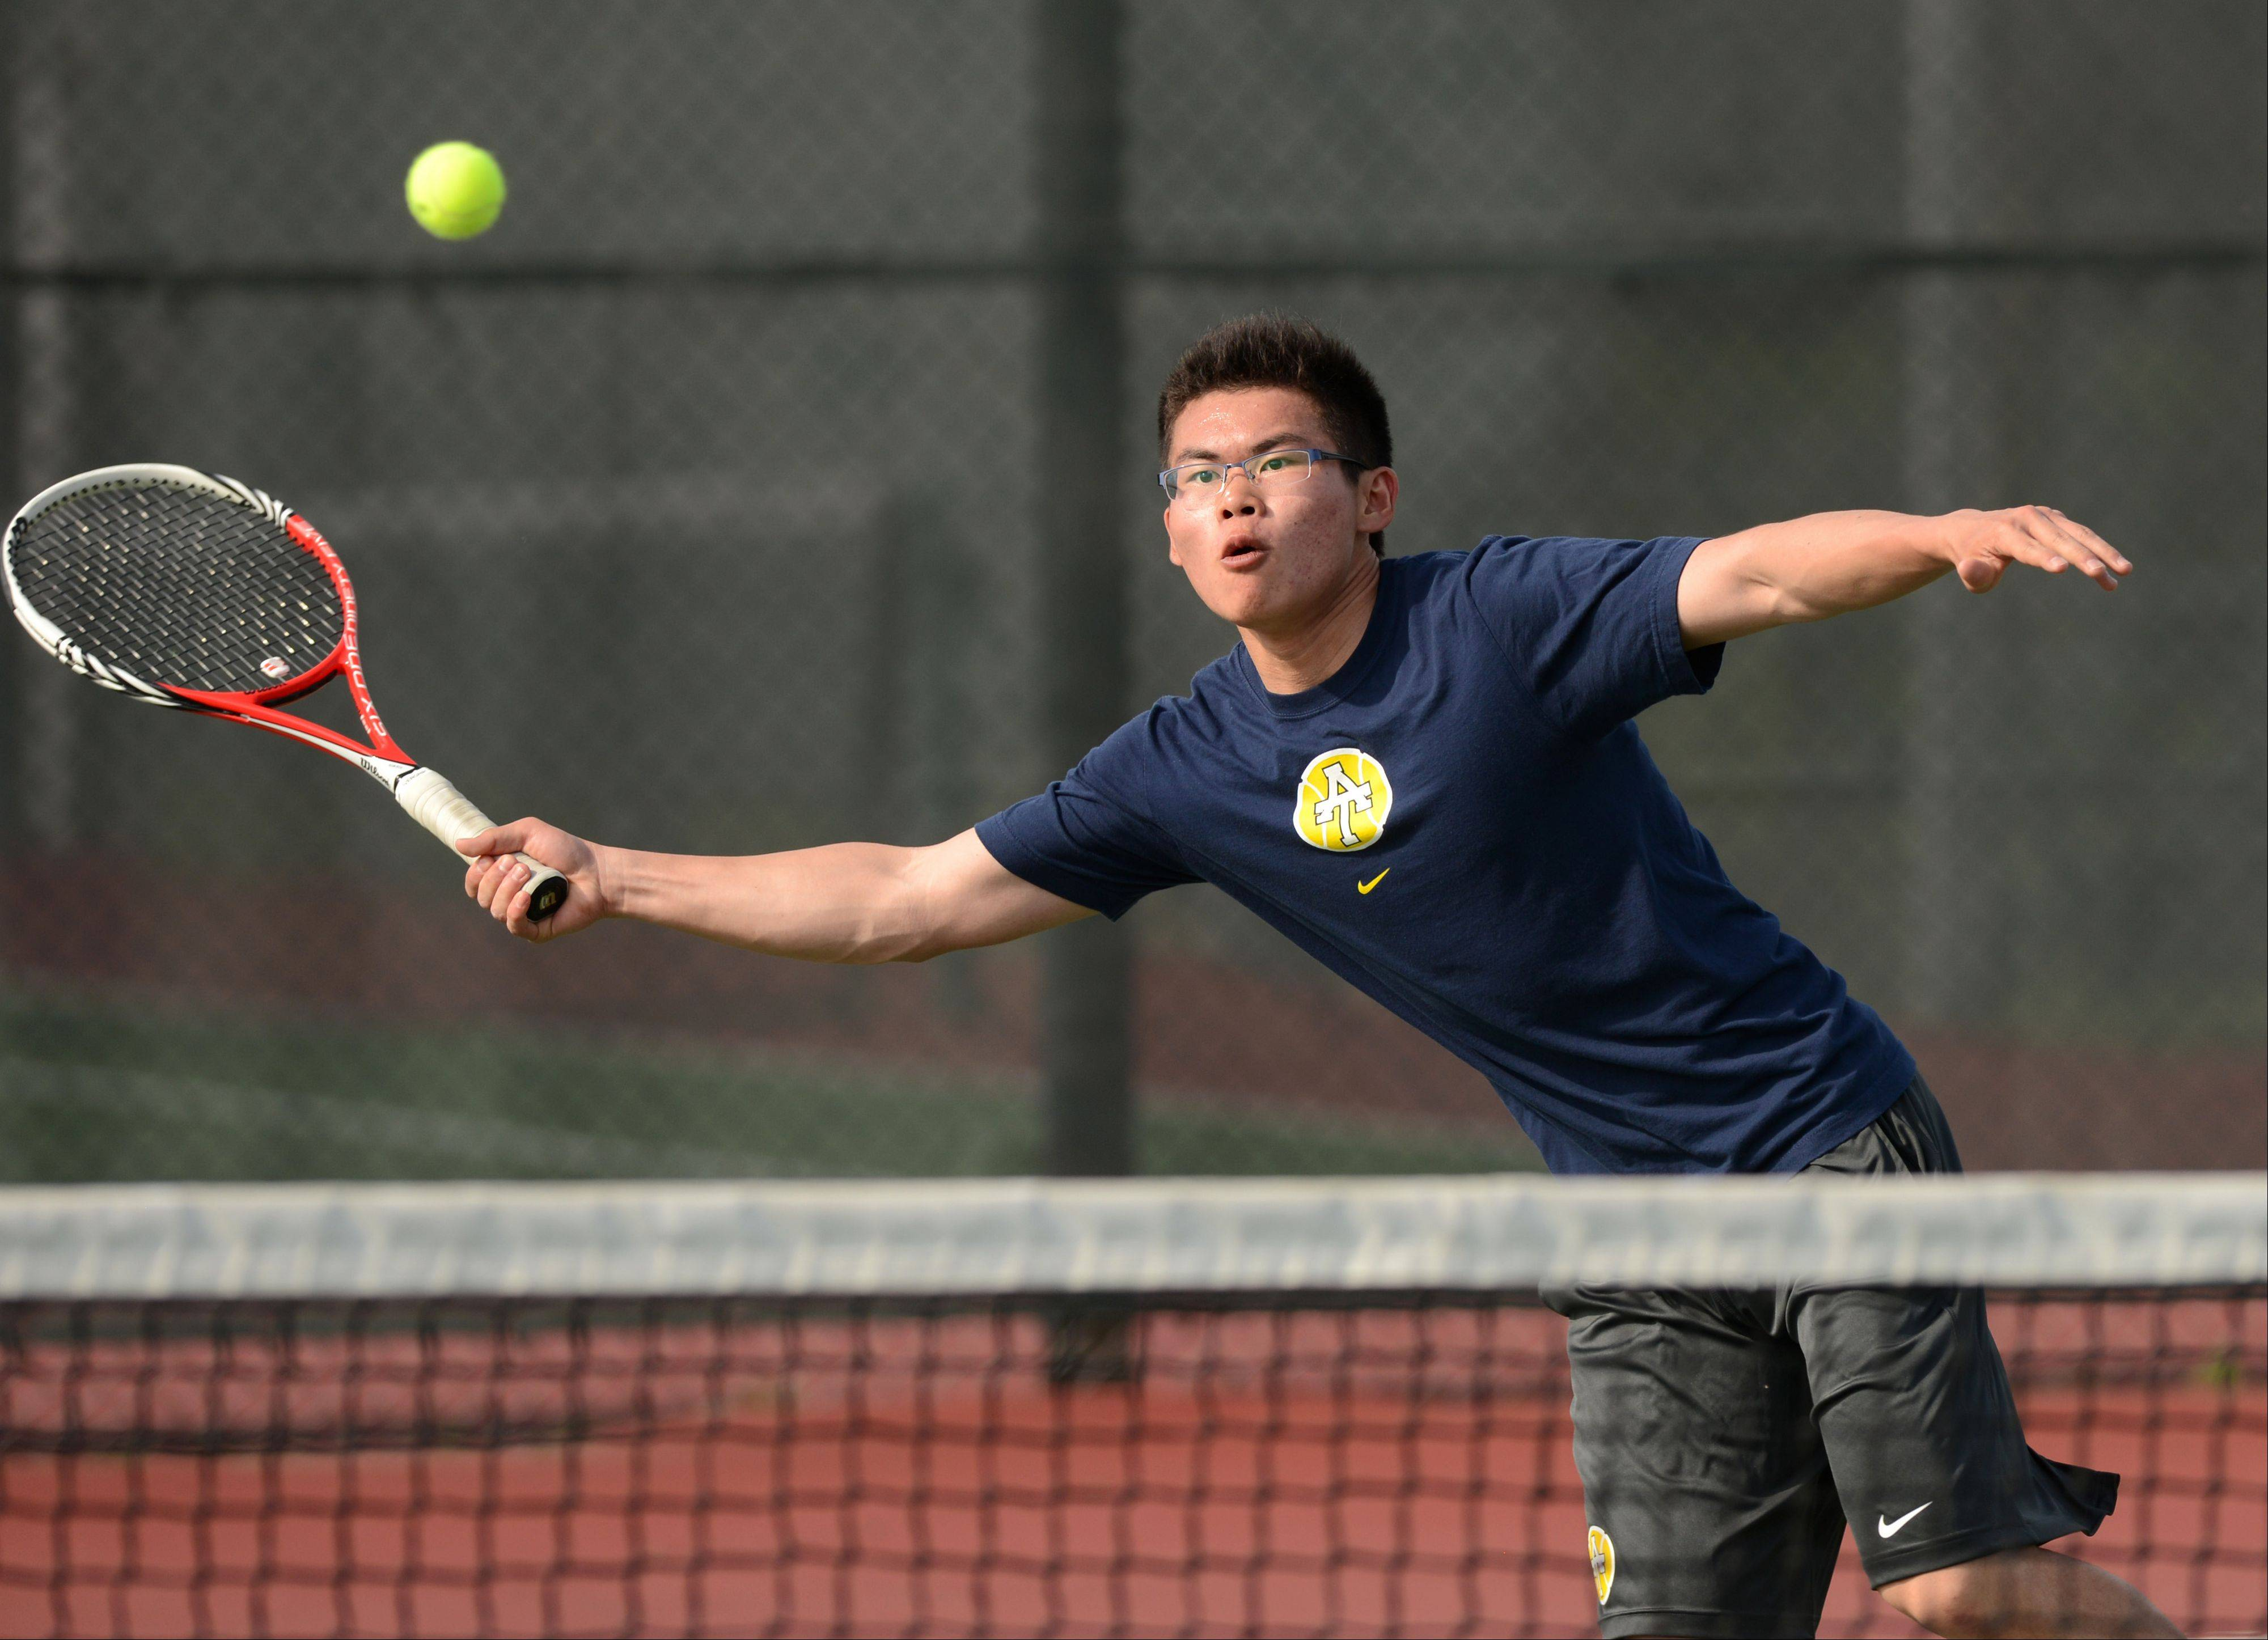 Number 1 singles Lan Lin of Addison Trail plays against Brendan Colgan of Glenbard South during a varsity boys tennis match in Glen Ellyn, Monday.